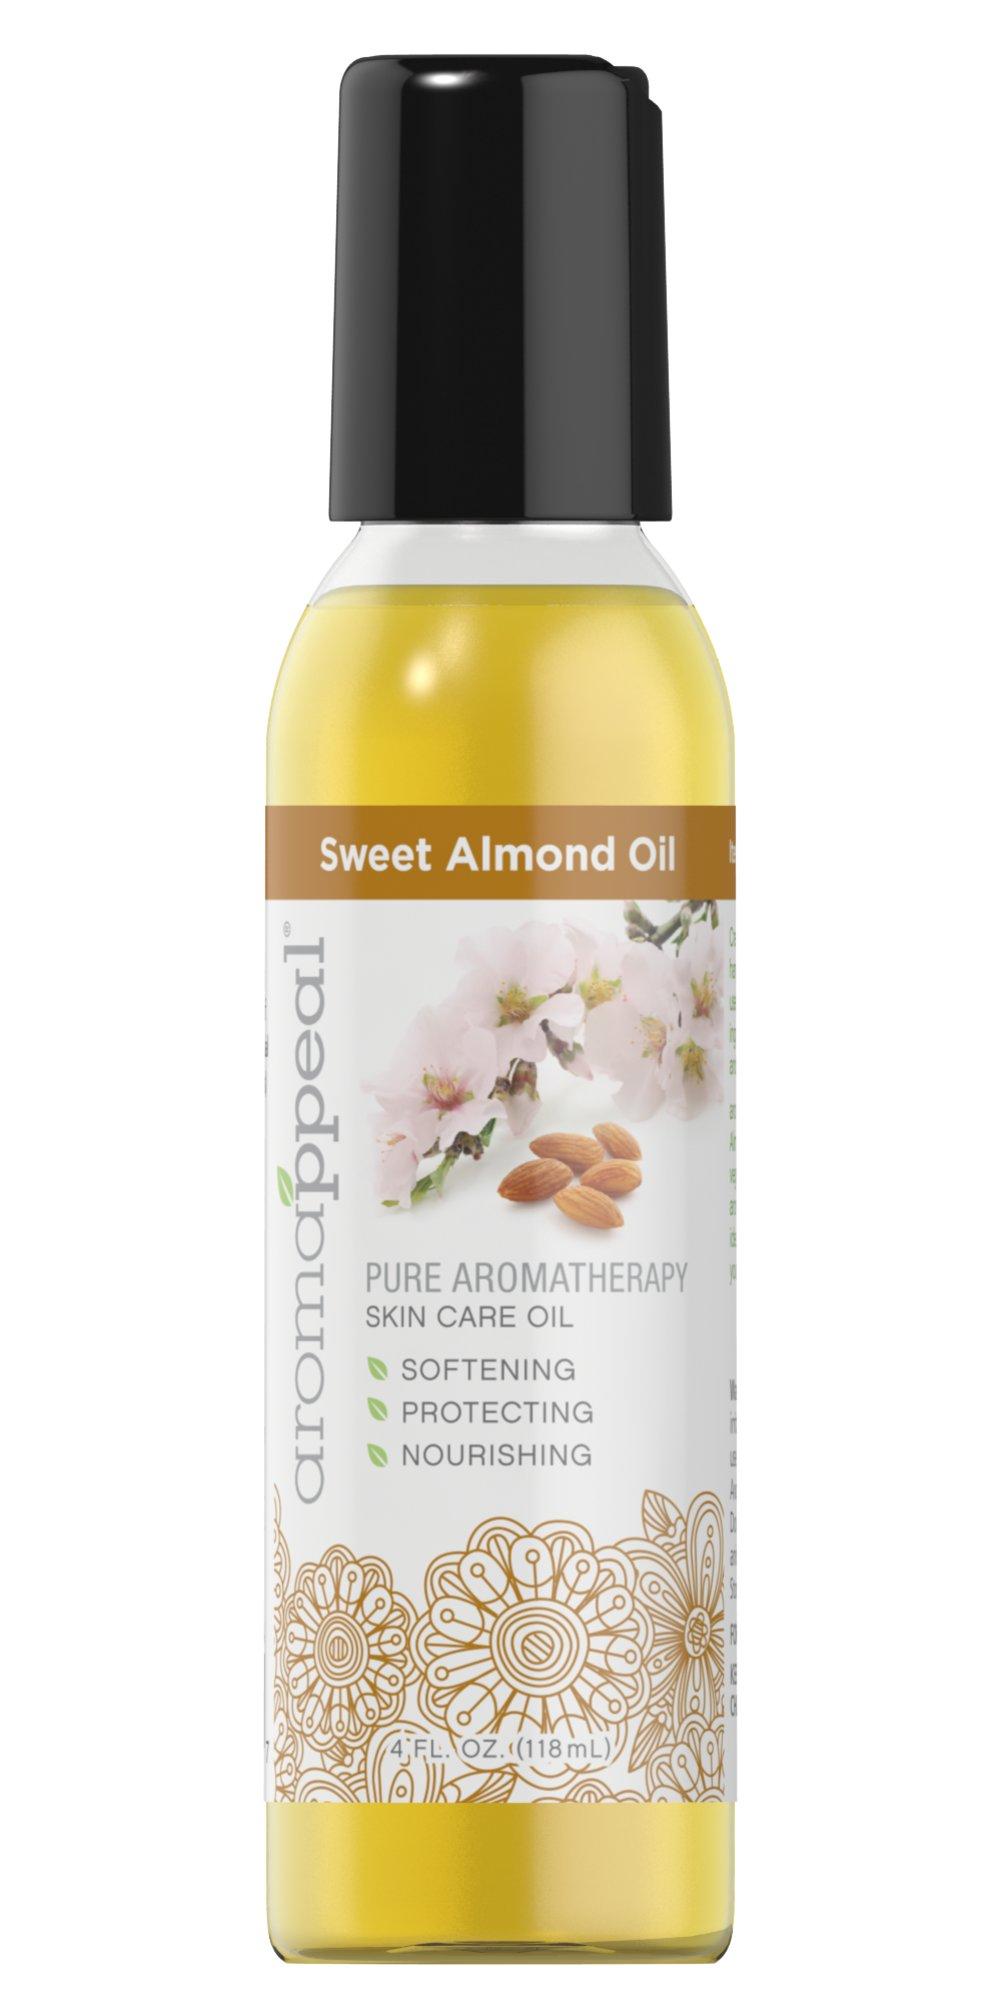 Sweet Almond Oil <p>Created to bring you harmony, Aromappeal™ uses the most balanced ingredients to lift your spirits and soothe your mind.</p><p>Aromappeal™ Sweet Almond Oil is a natural vegetable oil with a neutral aroma. This base makes an ideal ingredient to create your own aroma recipe.</p> 4 oz Oil  $8.99